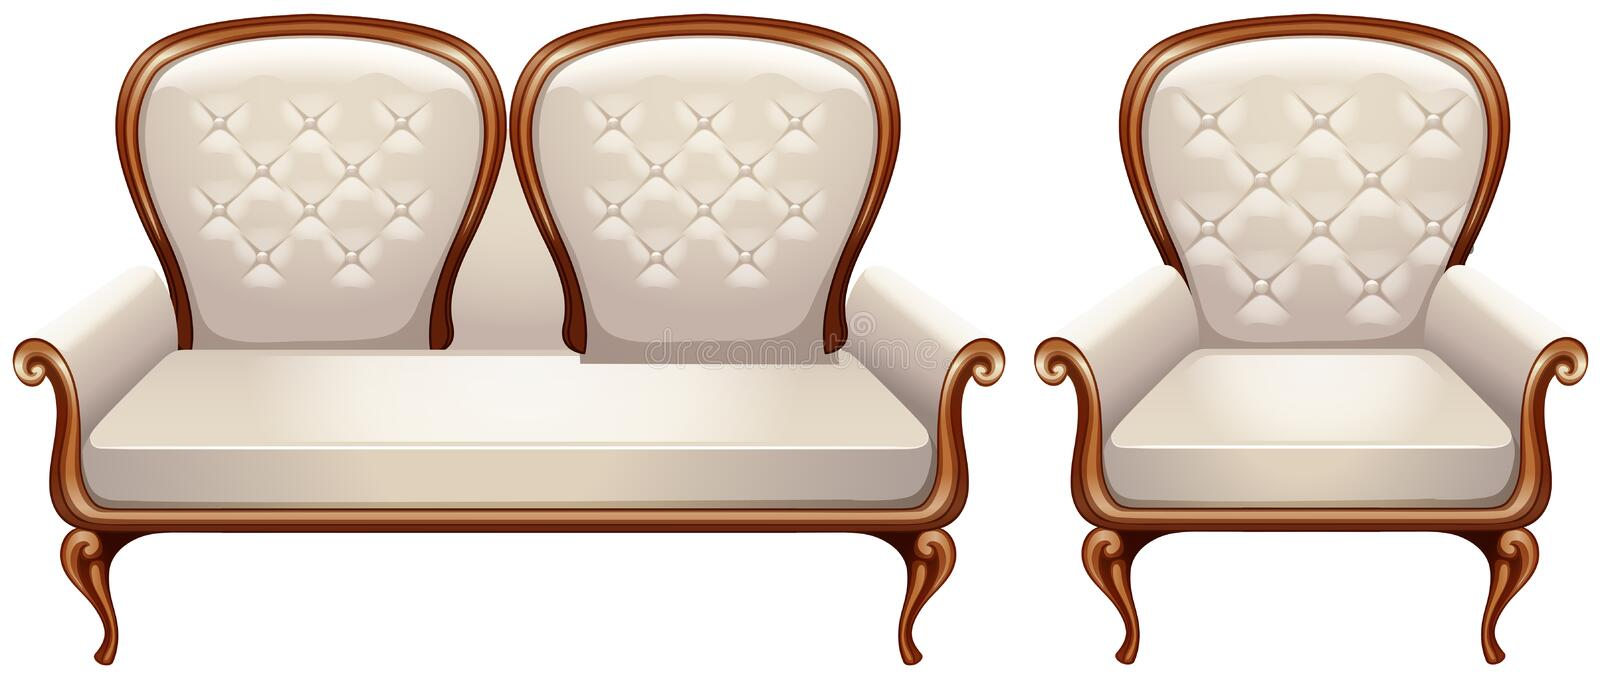 Armchair with white leather. Illustration royalty free illustration